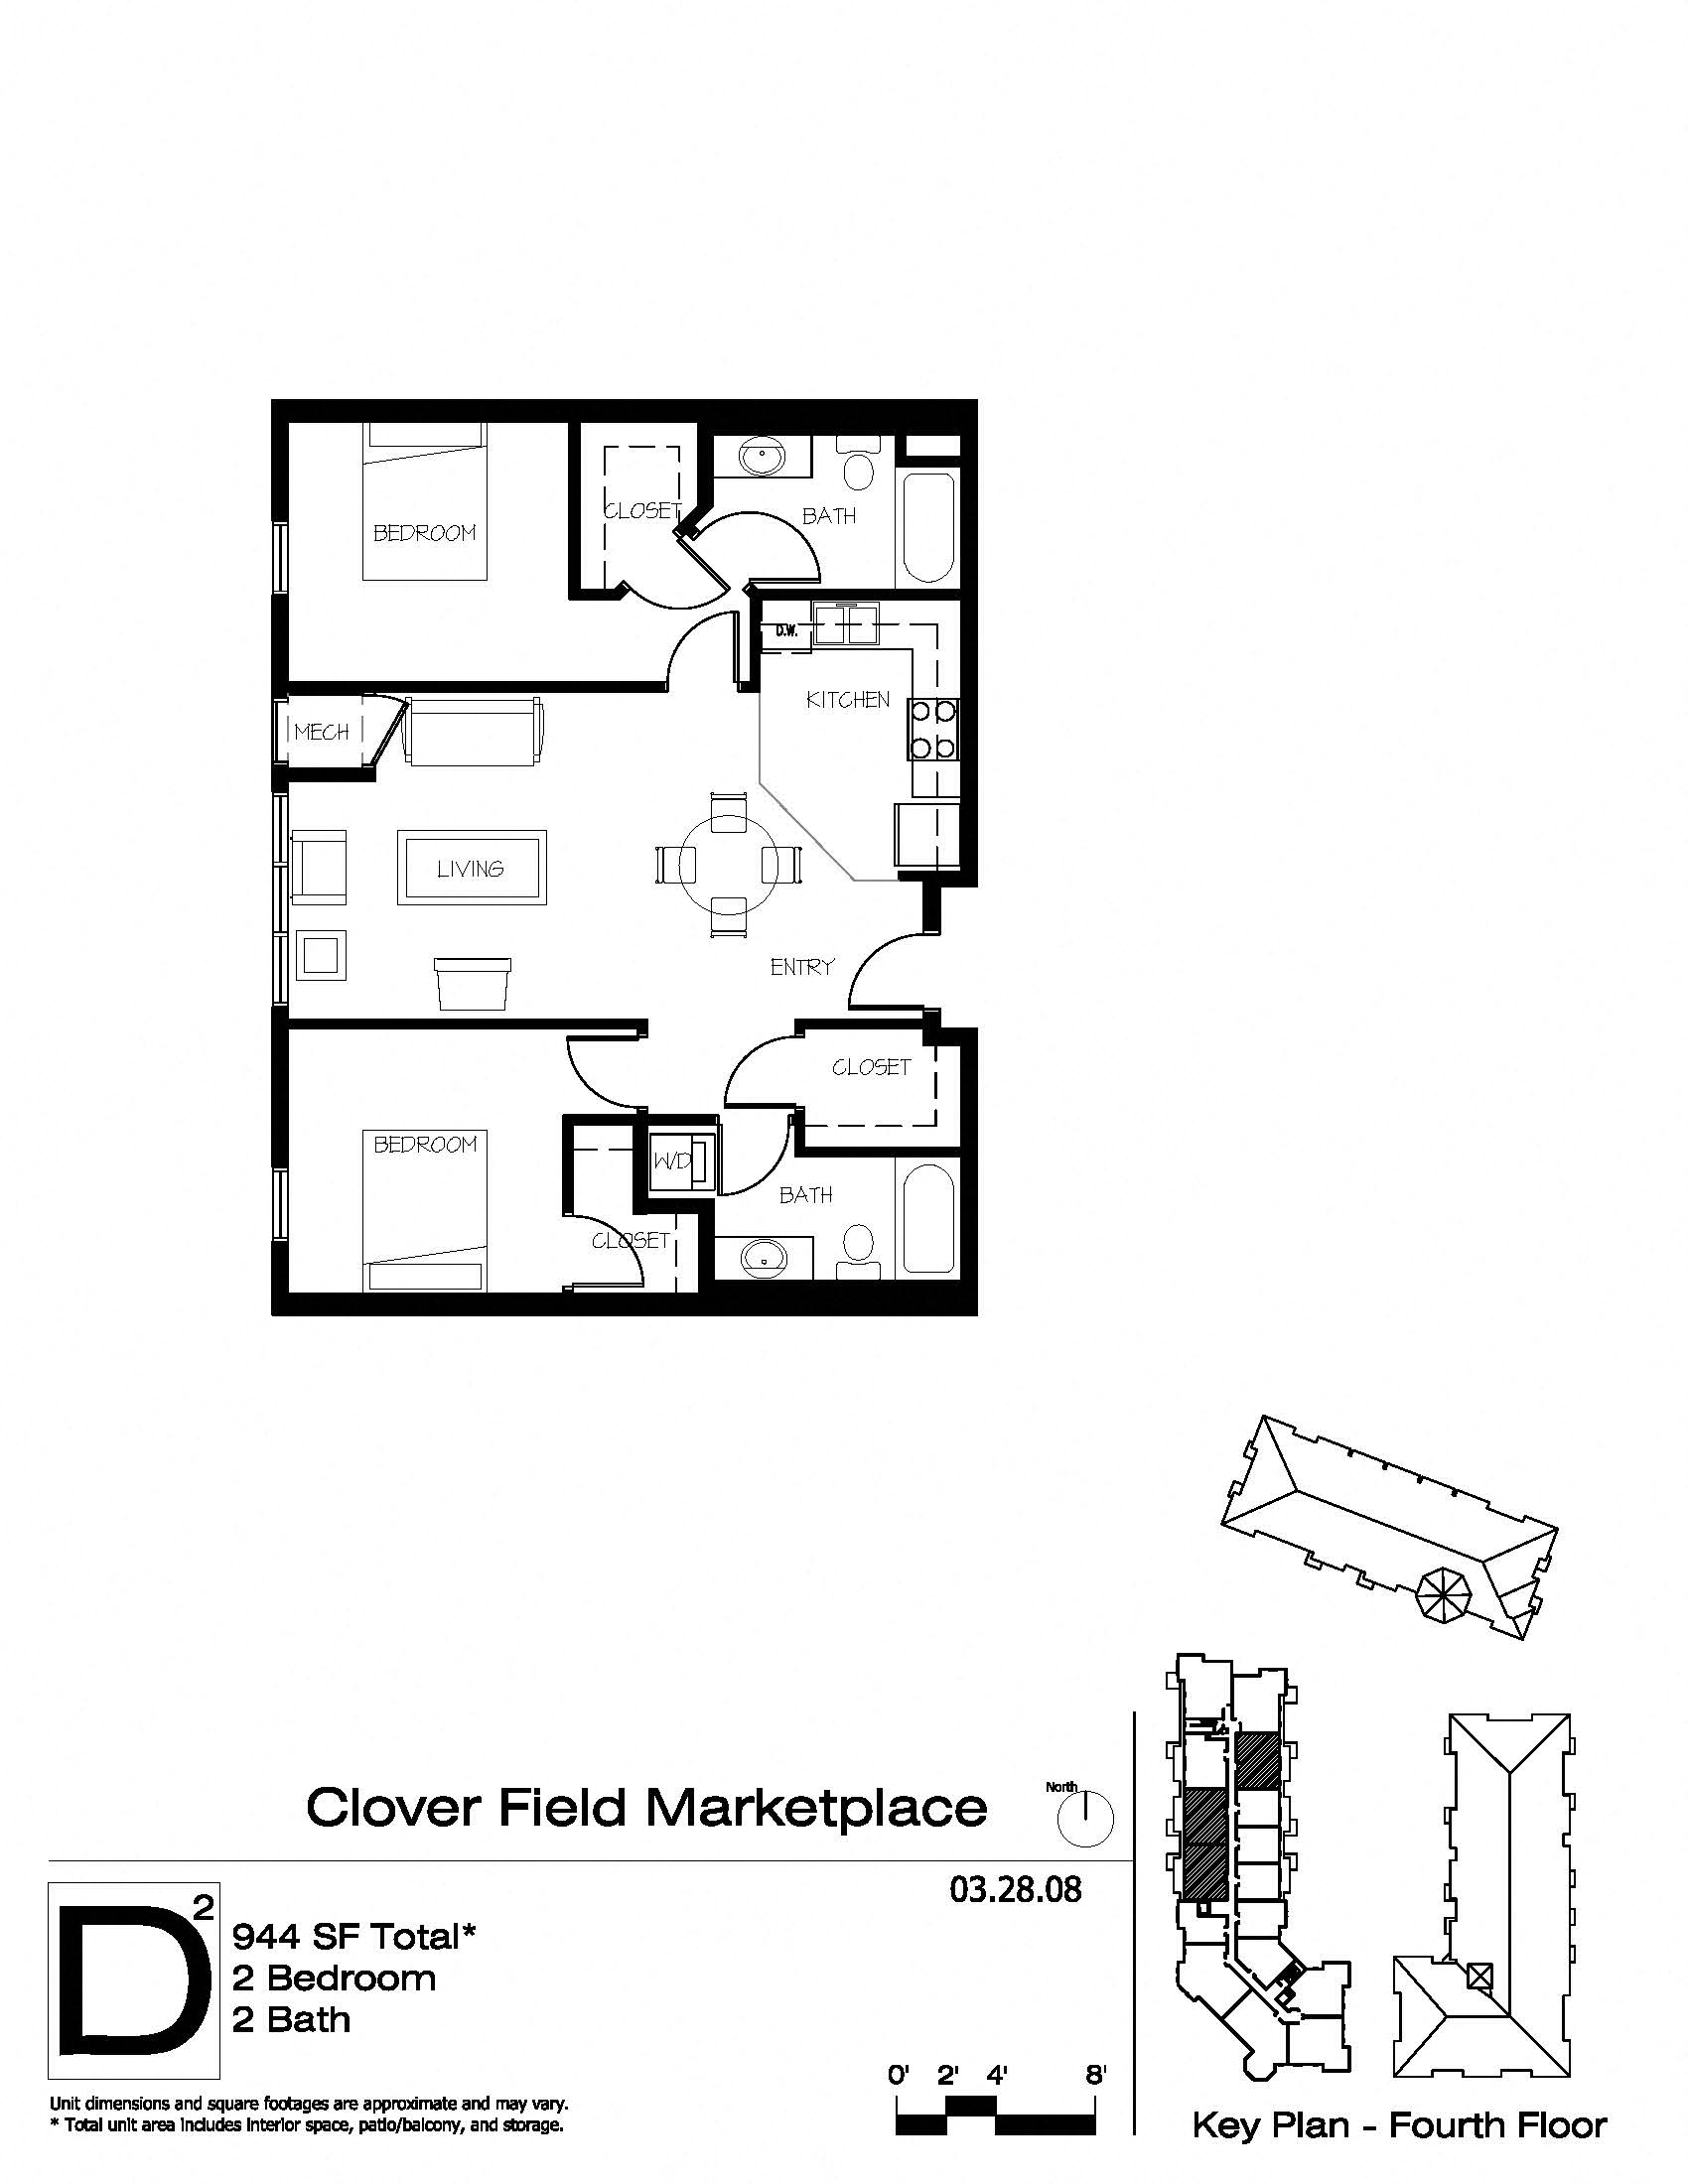 Floor Plans of Clover Field Marketplace in Chaska, MN